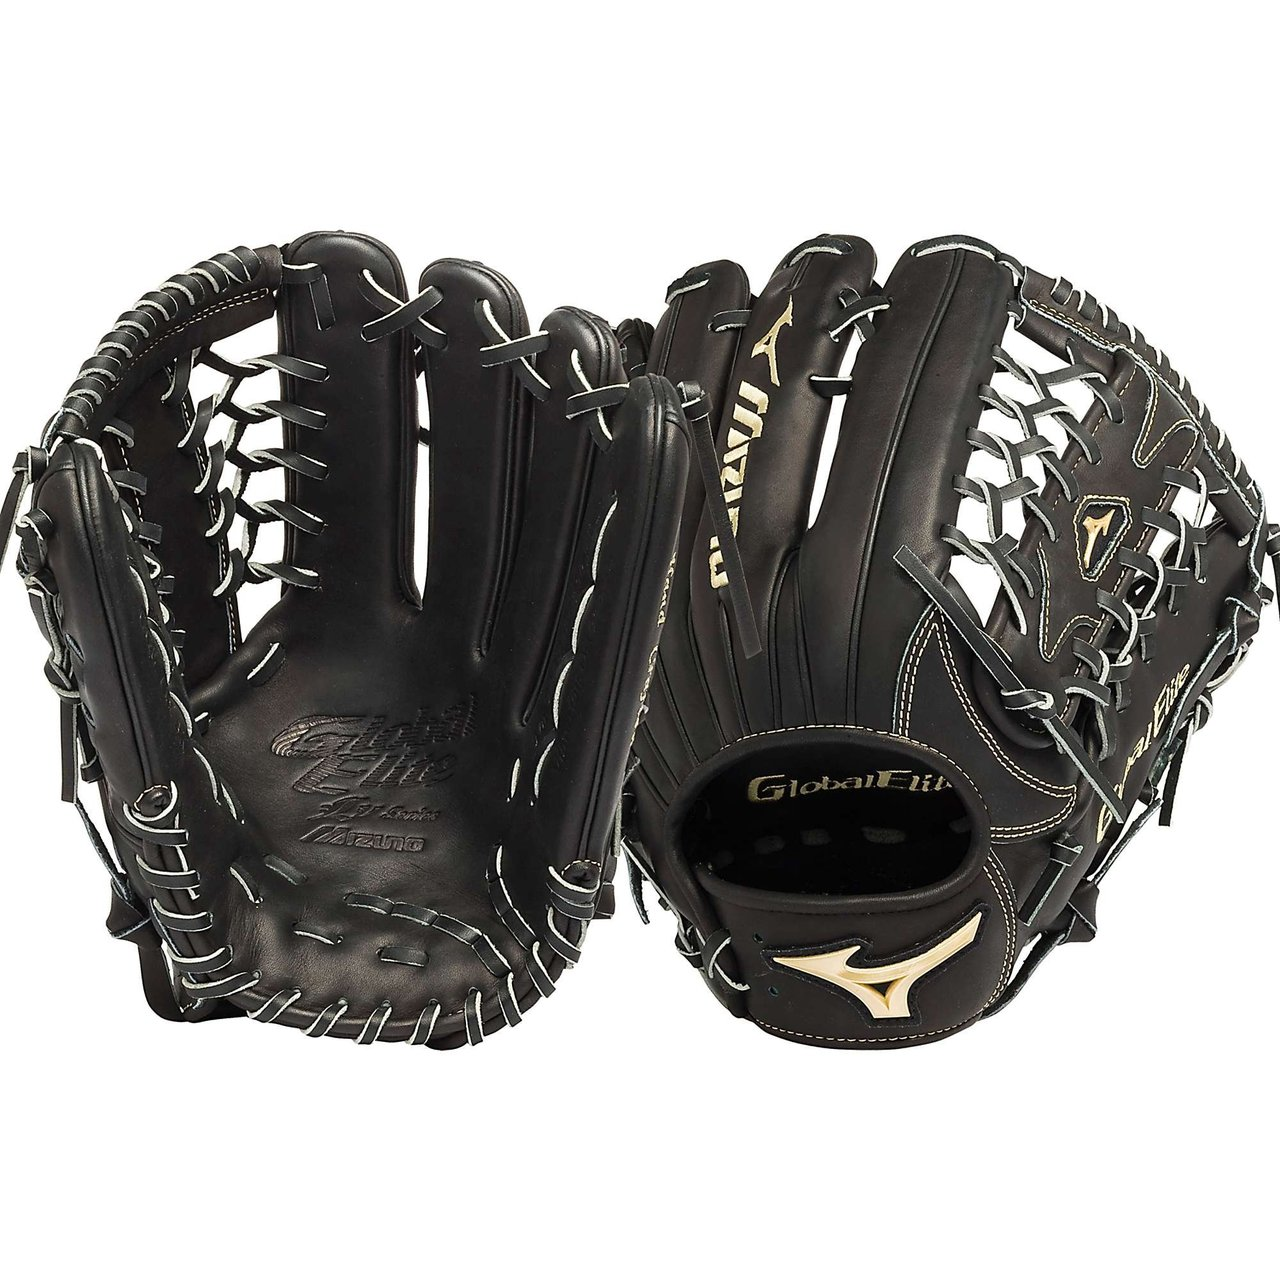 mizuno-gge71vbk-global-elite-vop-12-75-outfield-baseball-glove-right-handed-throw GGE71VBK-Right Handed Throw Mizuno New Mizuno GGE71VBK Global Elite VOP 12.75 Outfield Baseball Glove Right Handed